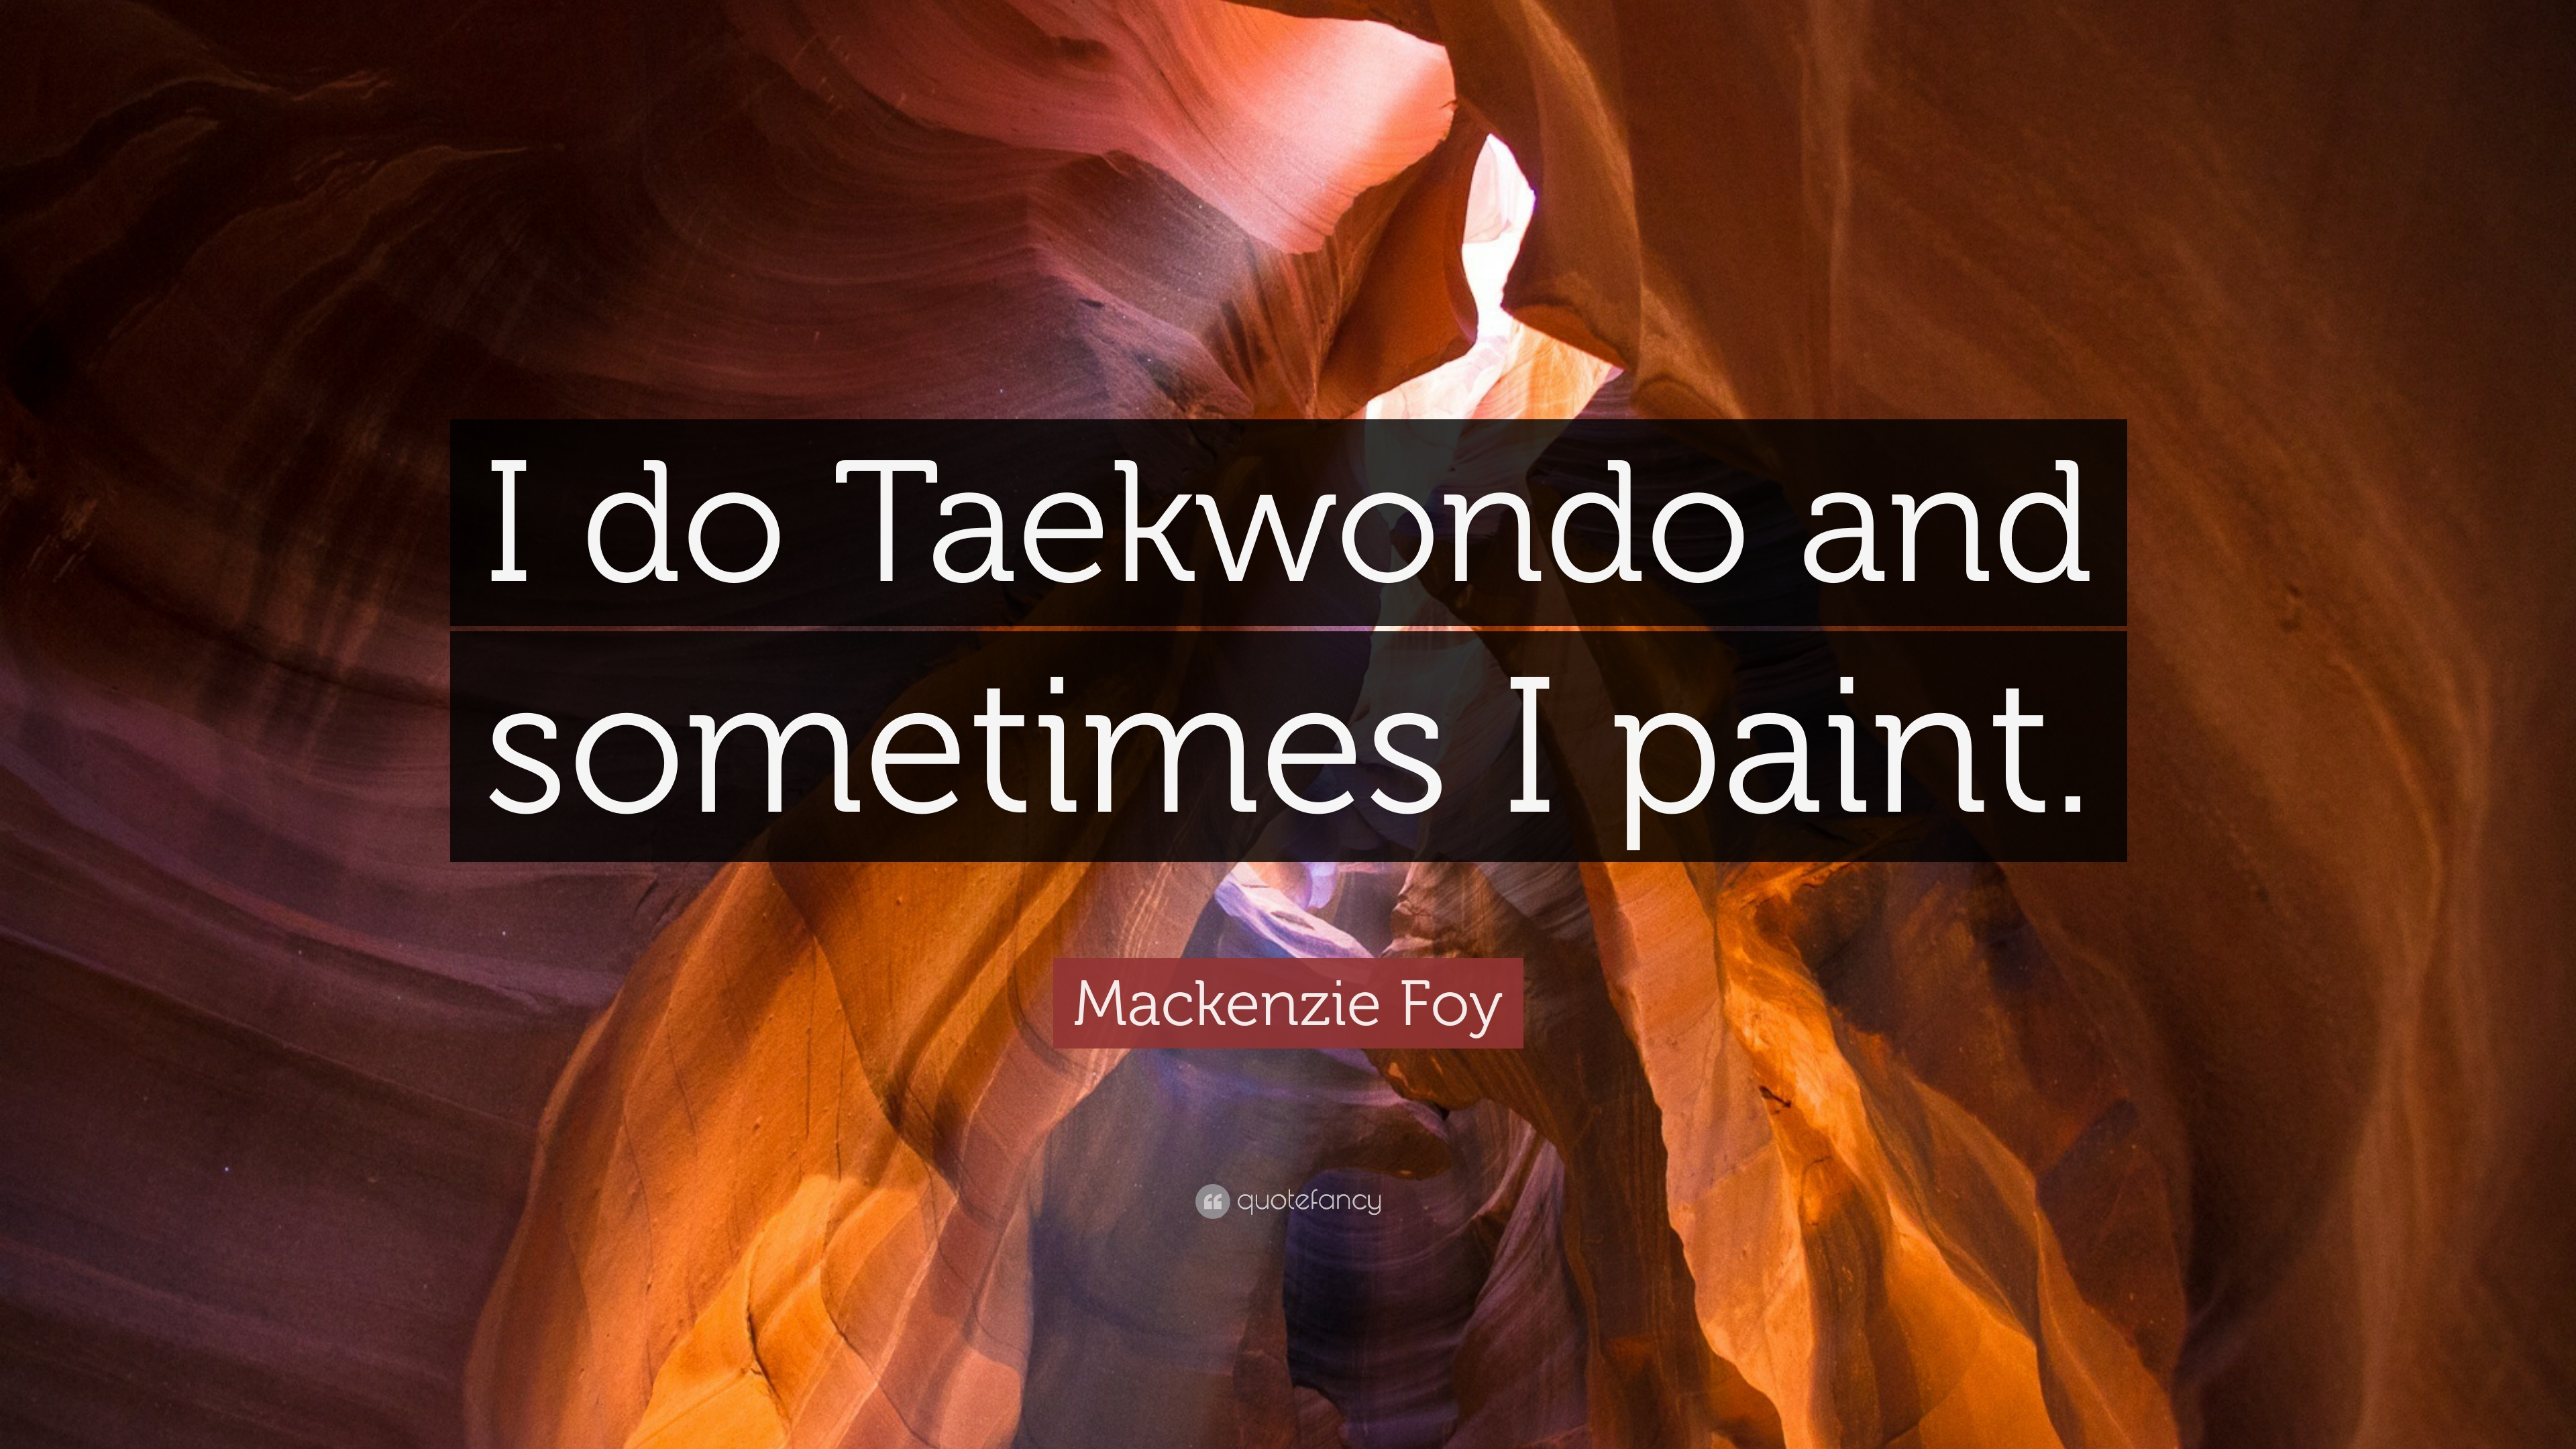 Taekwondo Quotes Mackenzie Foy Quotes 6 Wallpapers  Quotefancy